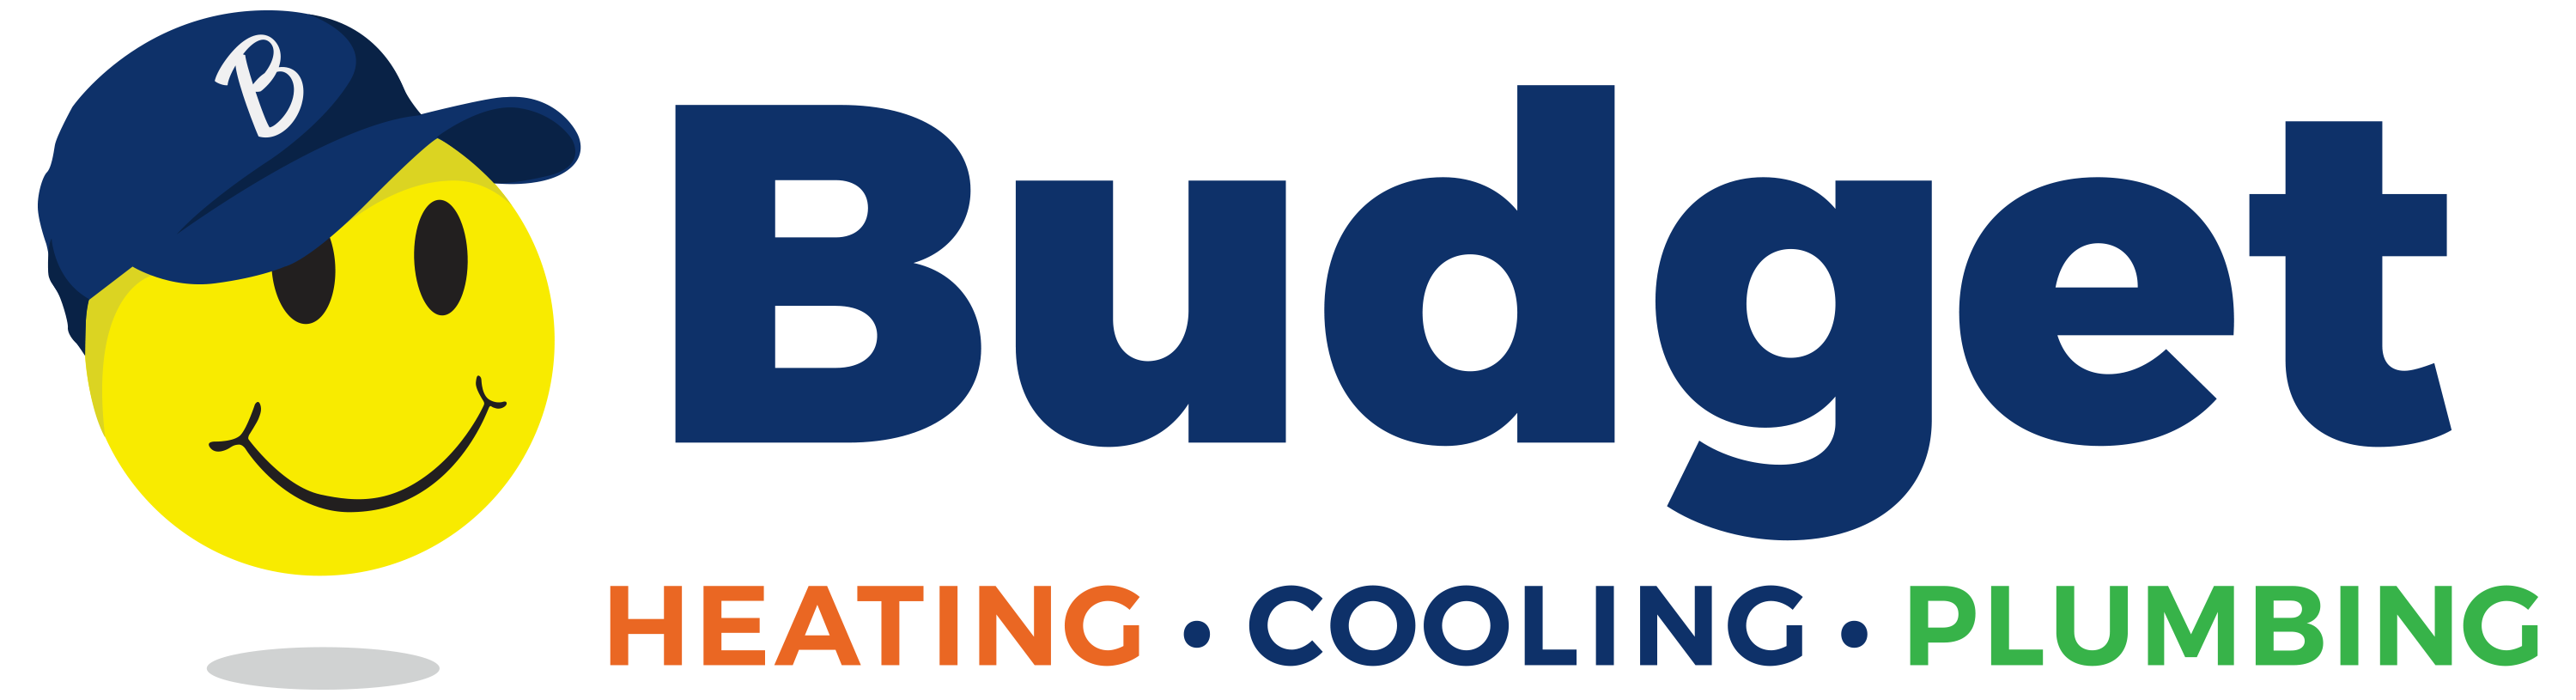 Budget Heating, Cooling and Plumbing logo